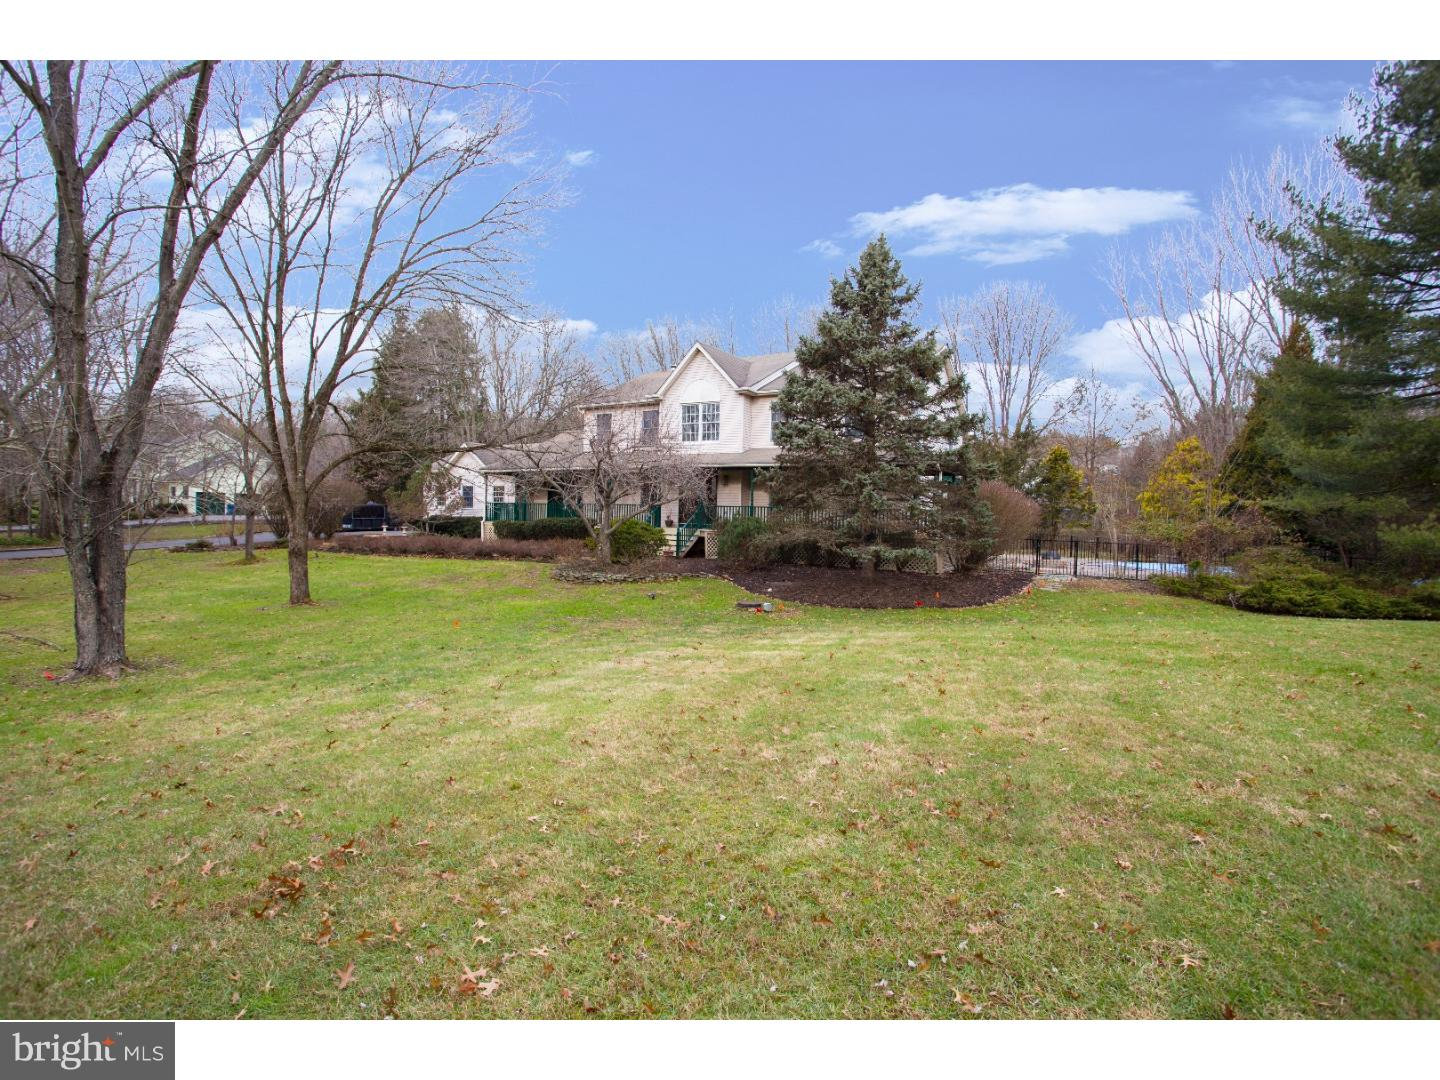 Single Family Home for Sale at 6 COVENTRY Lane Hopewell, New Jersey 08525 United StatesMunicipality: Hopewell Township